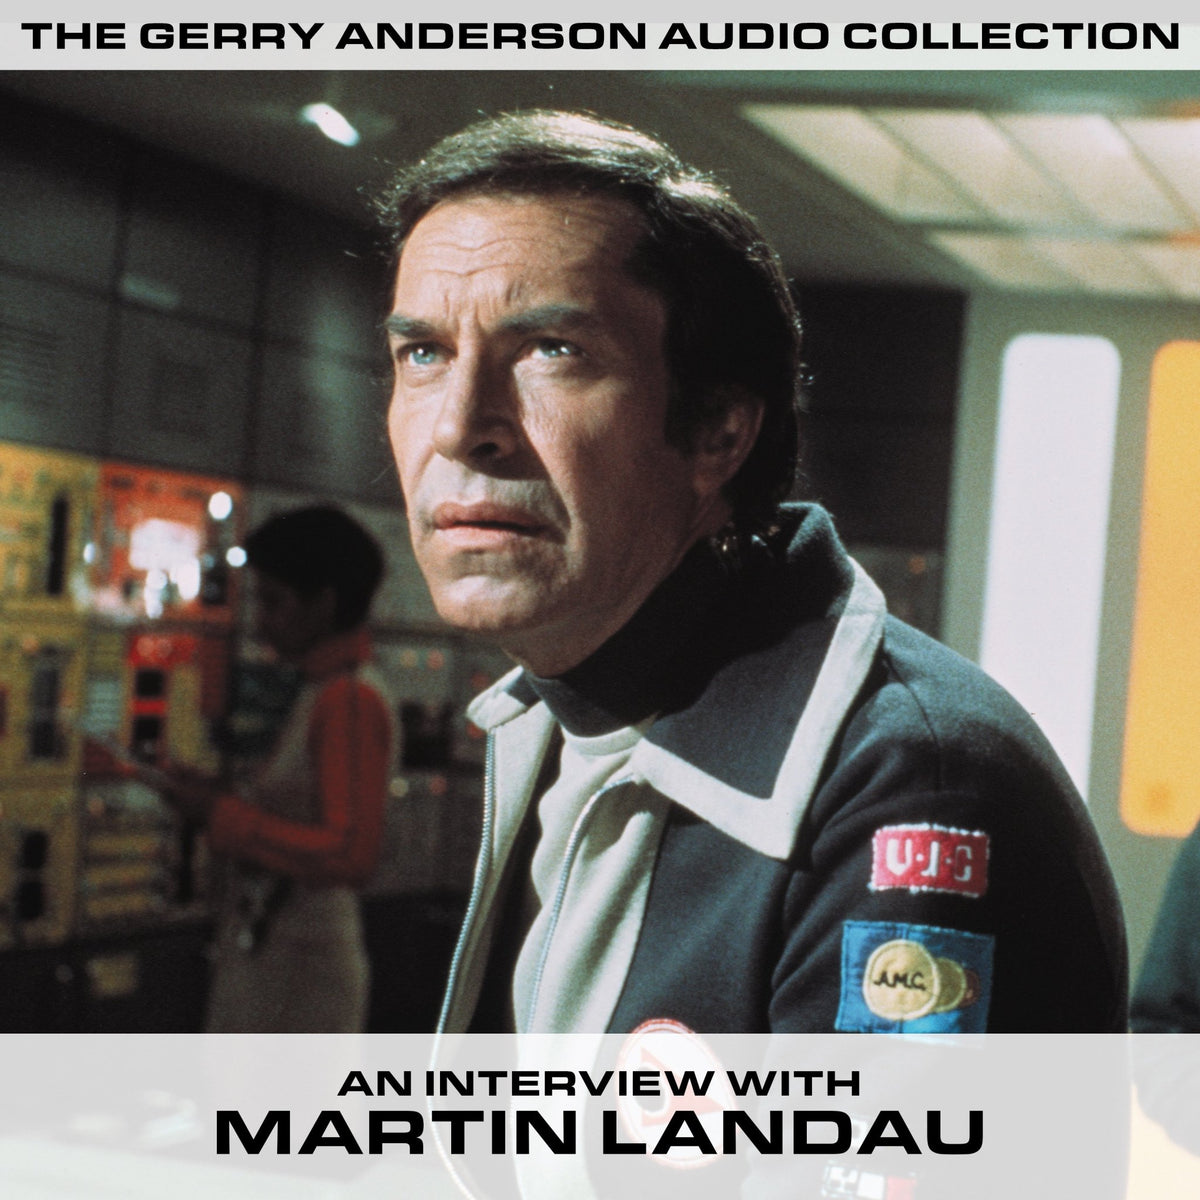 Martin Landau Archive Interview [DOWNLOAD] - The Gerry Anderson Store